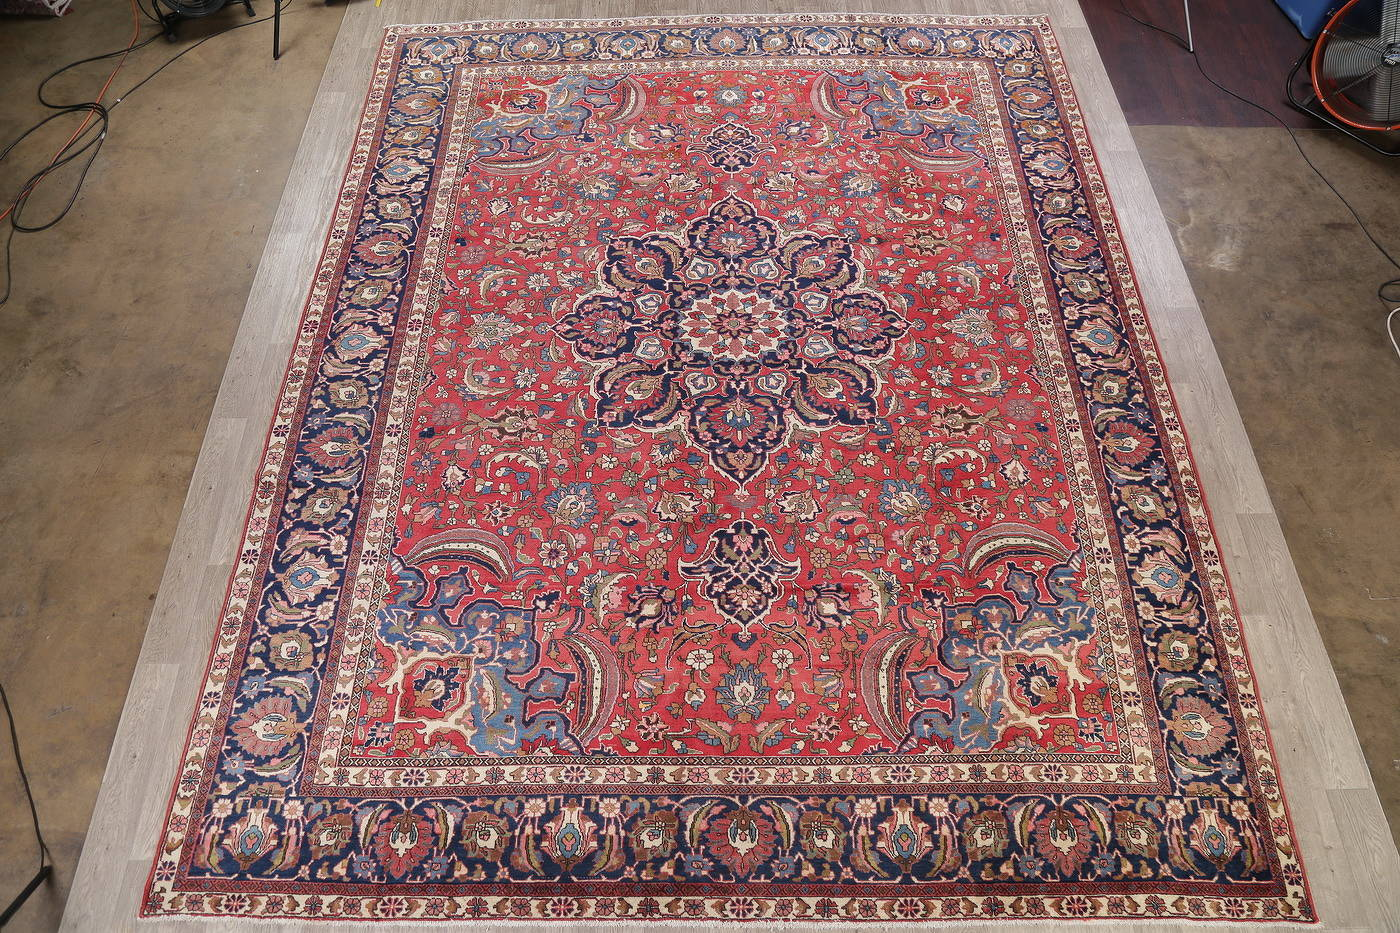 Antique Vegetable Dye Bakhtiari Persian Area Rug 12x14 image 2